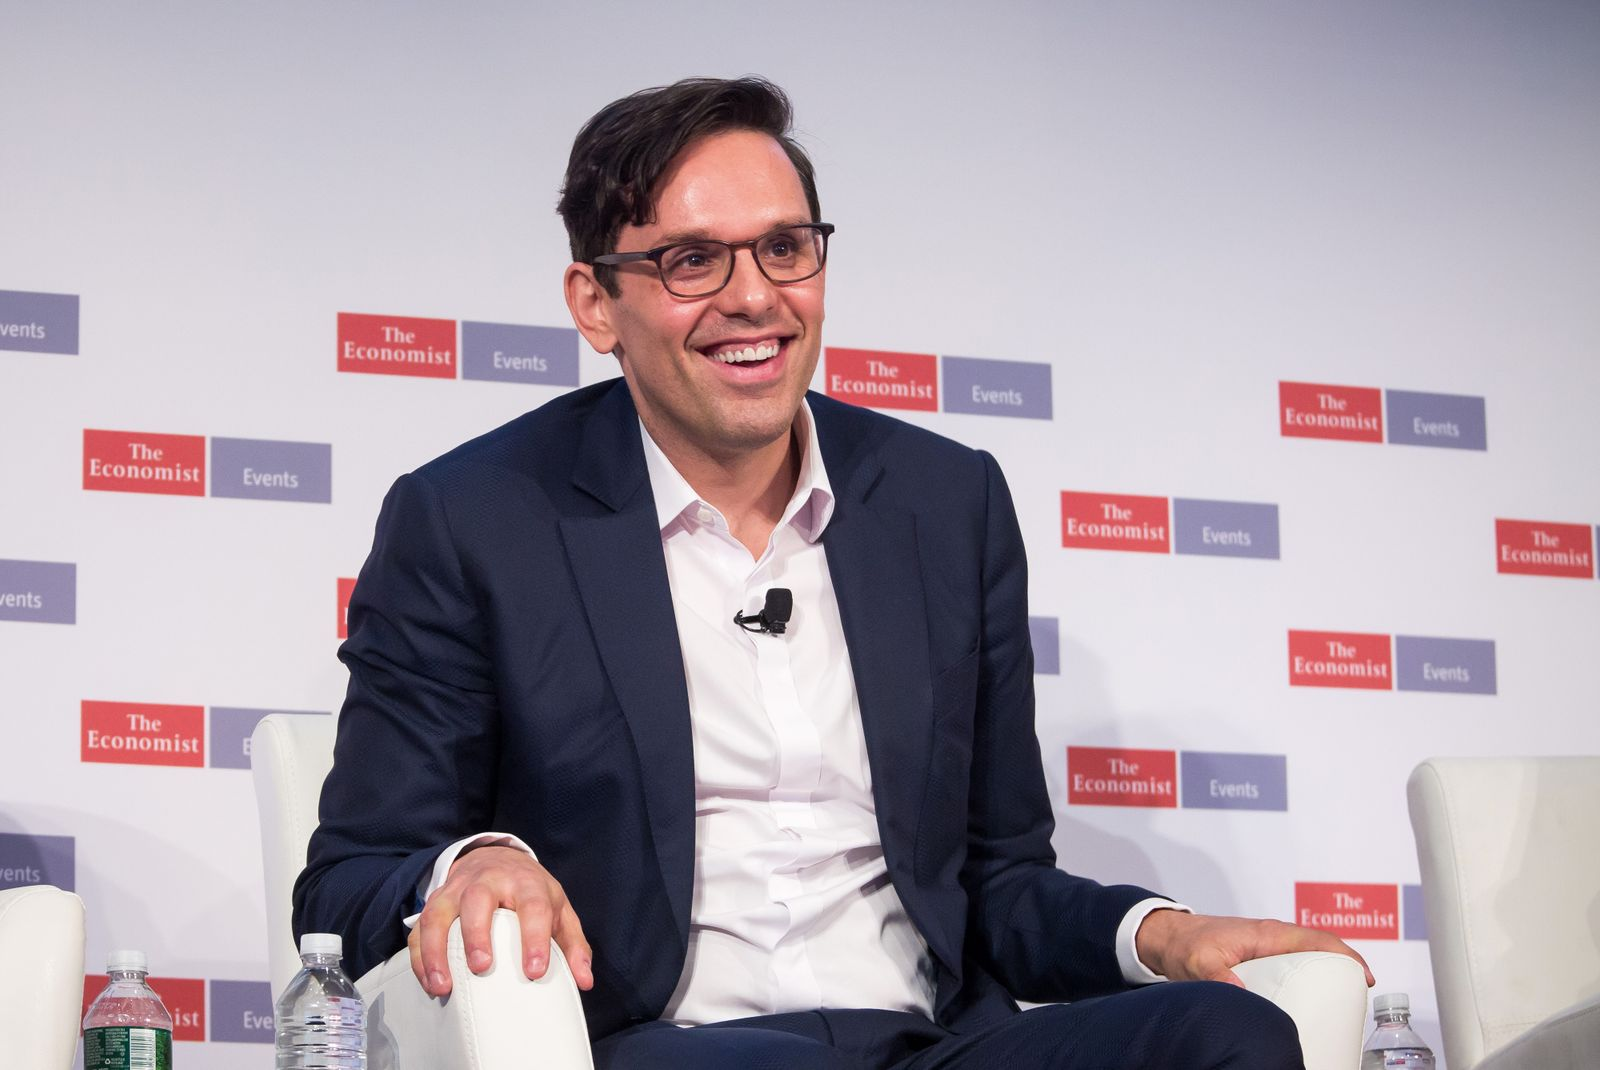 Key Speakers At The Economist Finance Disrupted Conference